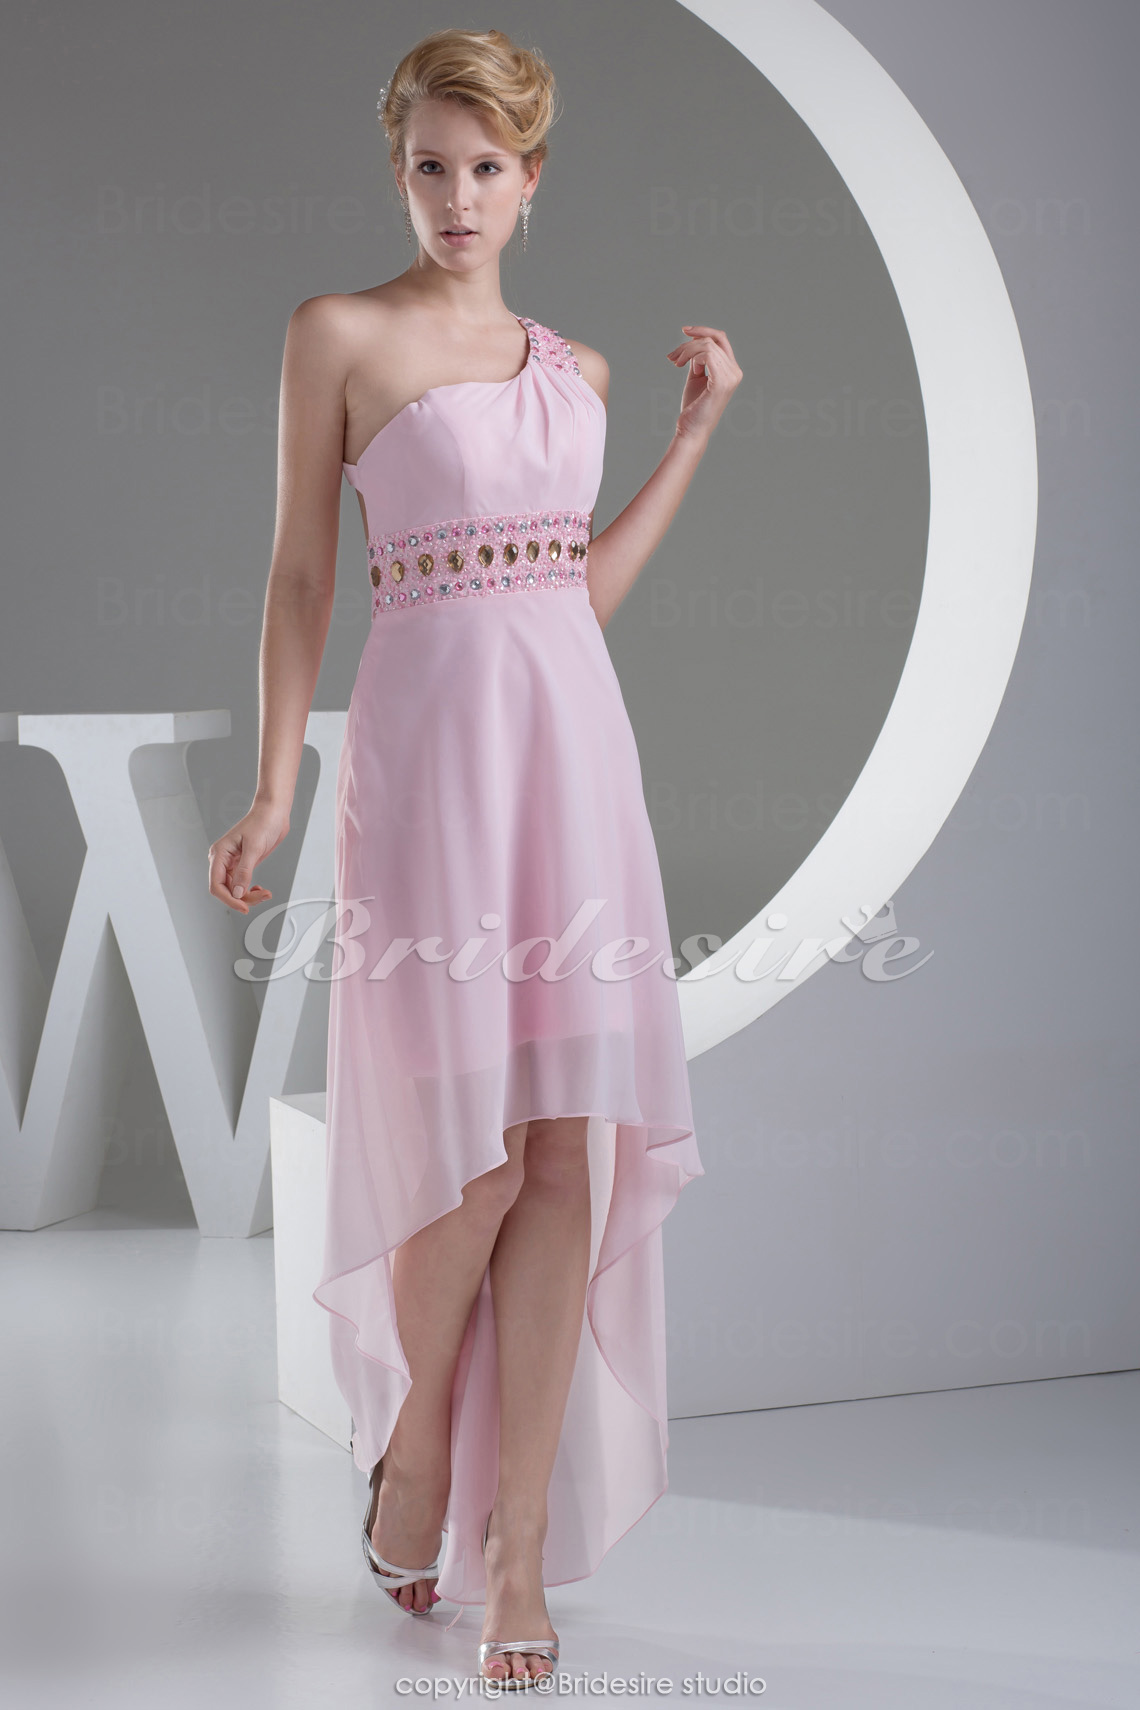 A-line One Shoulder Asymmetrical Sleeveless Chiffon Dress